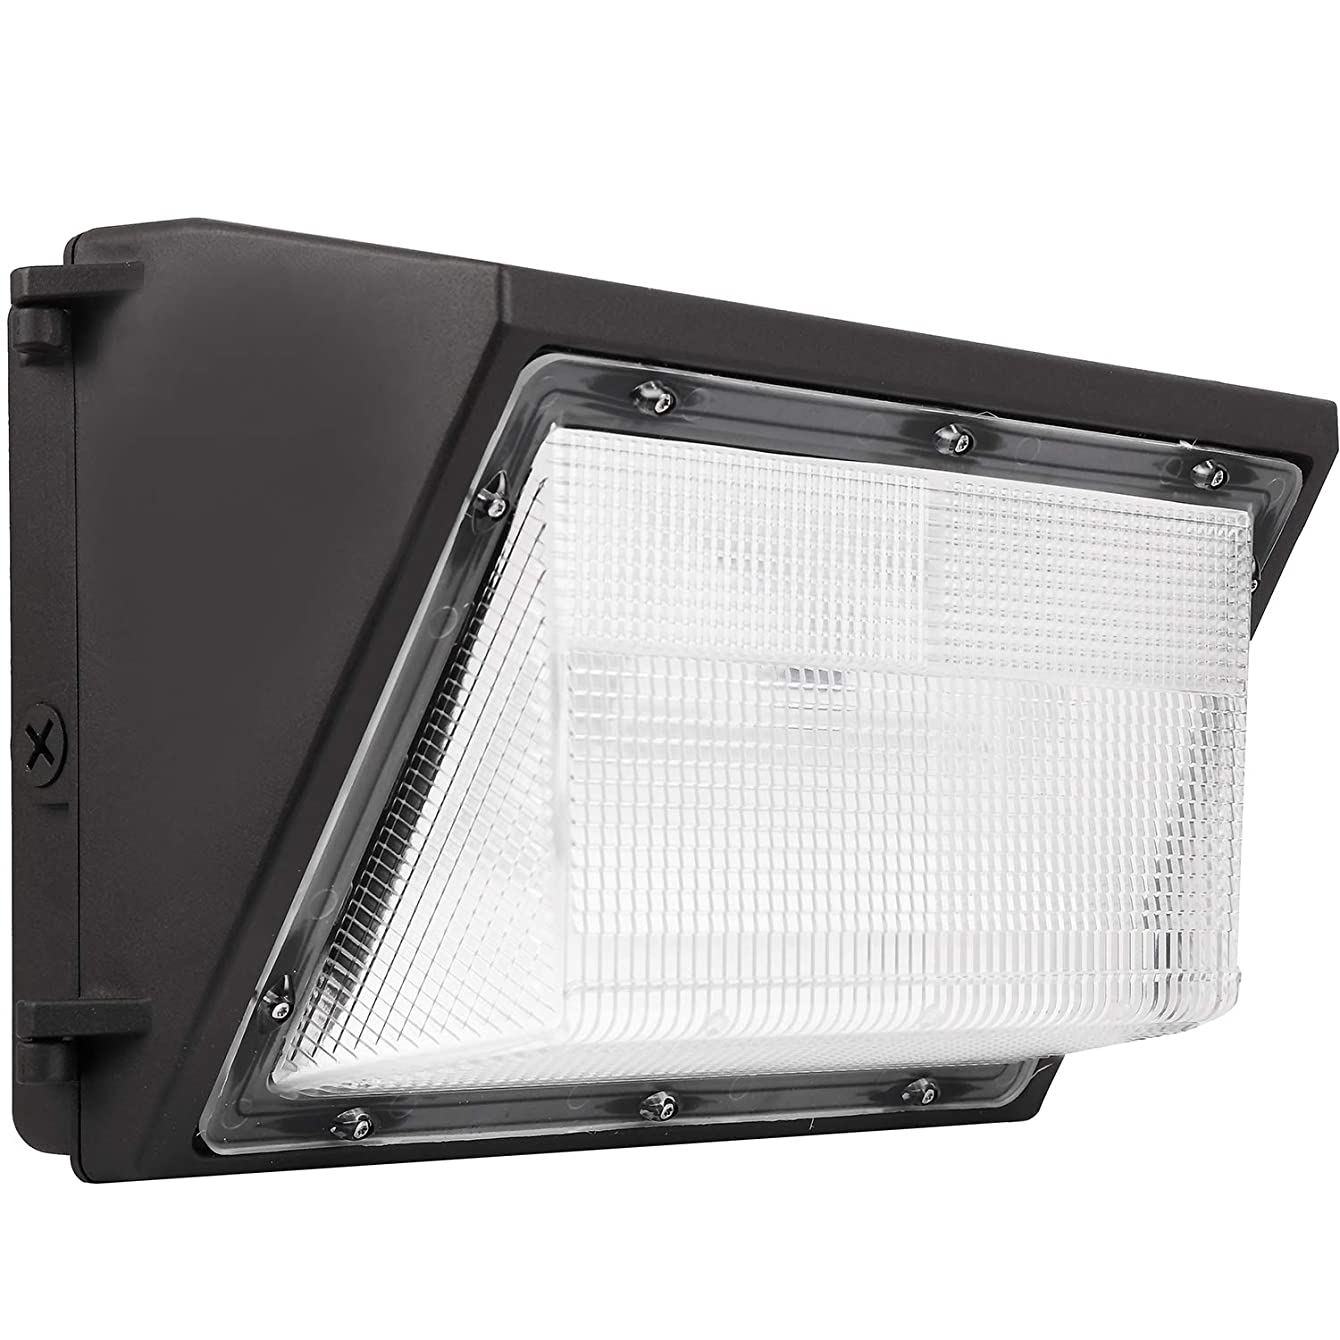 LED Wall Pack with Built In Photocell - 80W 5000K Commercial Outdoor Light Fixture, 9600 Lumen 120LM/W (Out-Door Security Porch Lighting For Industrial Out-Side) 120-277V